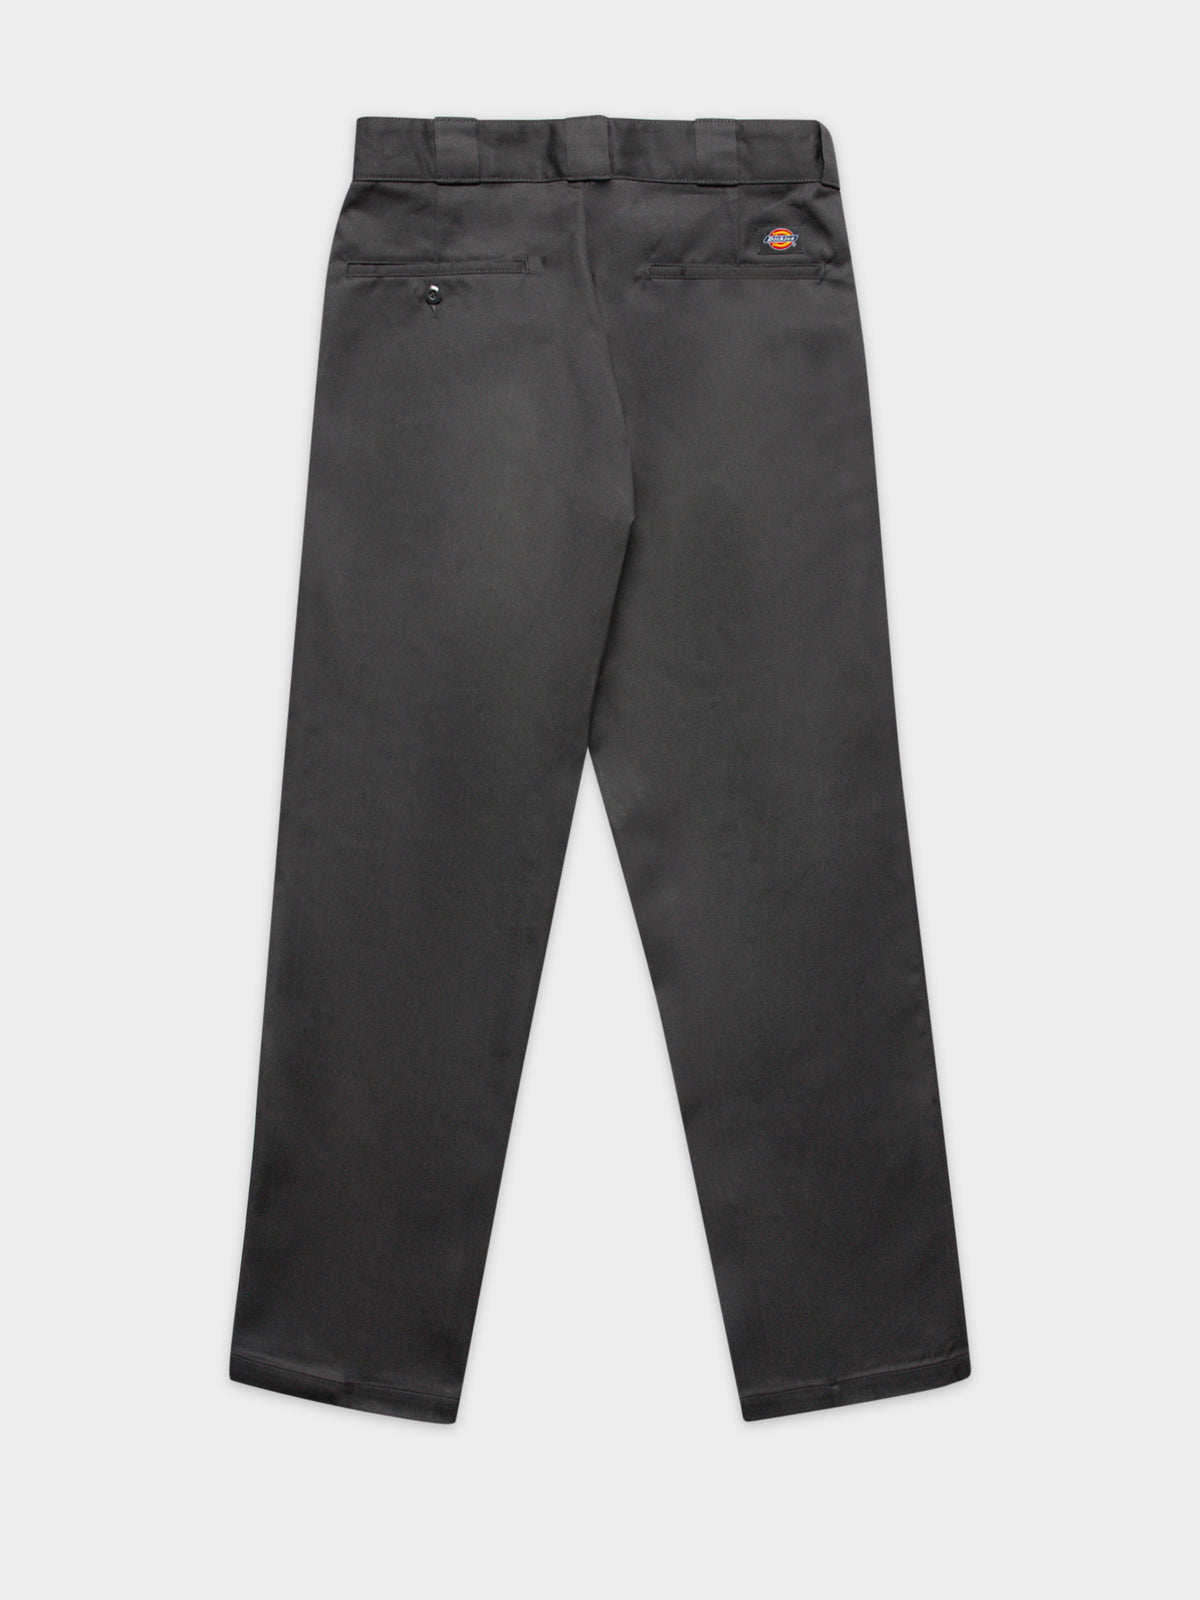 Original 874 Work Pants in Charcoal